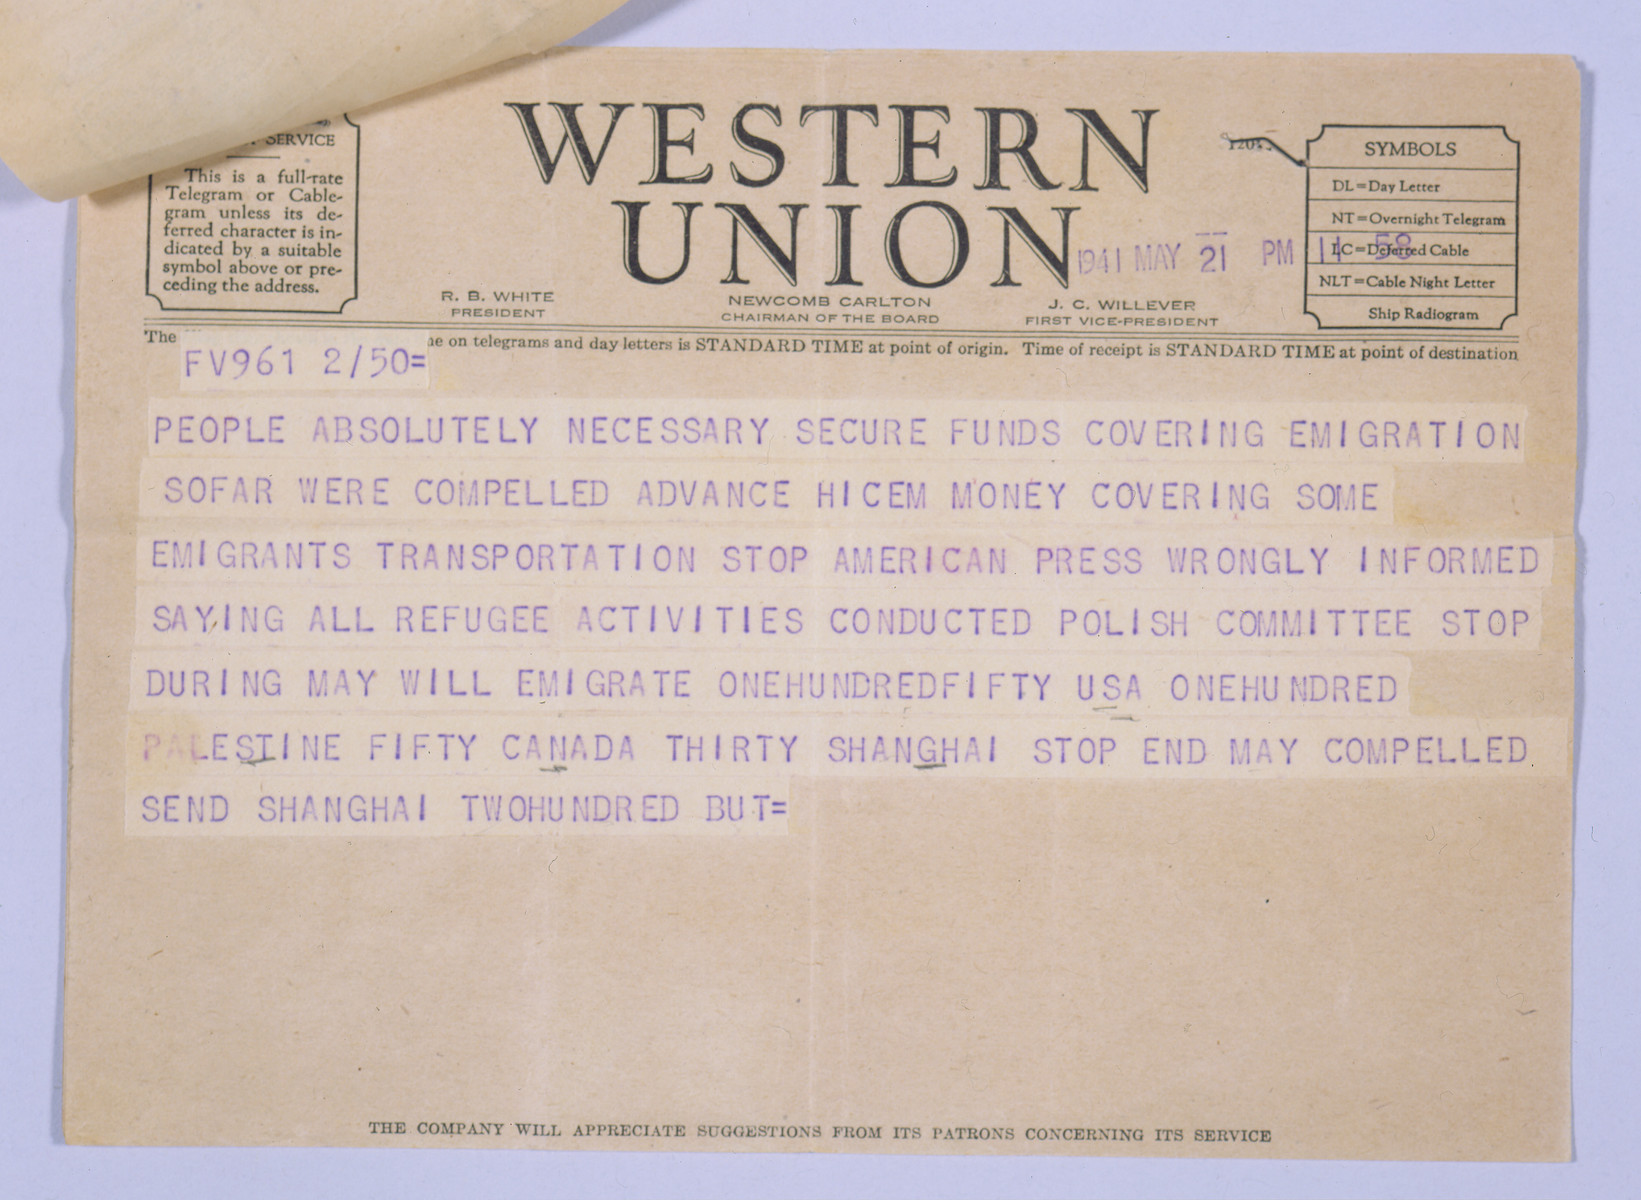 A Western Union telegram sent to Anatole Ponevejsky, the former head of the Kobe Jewish community who had recently immigrated to America, asking for his help in securing visas for refugees in Japan.